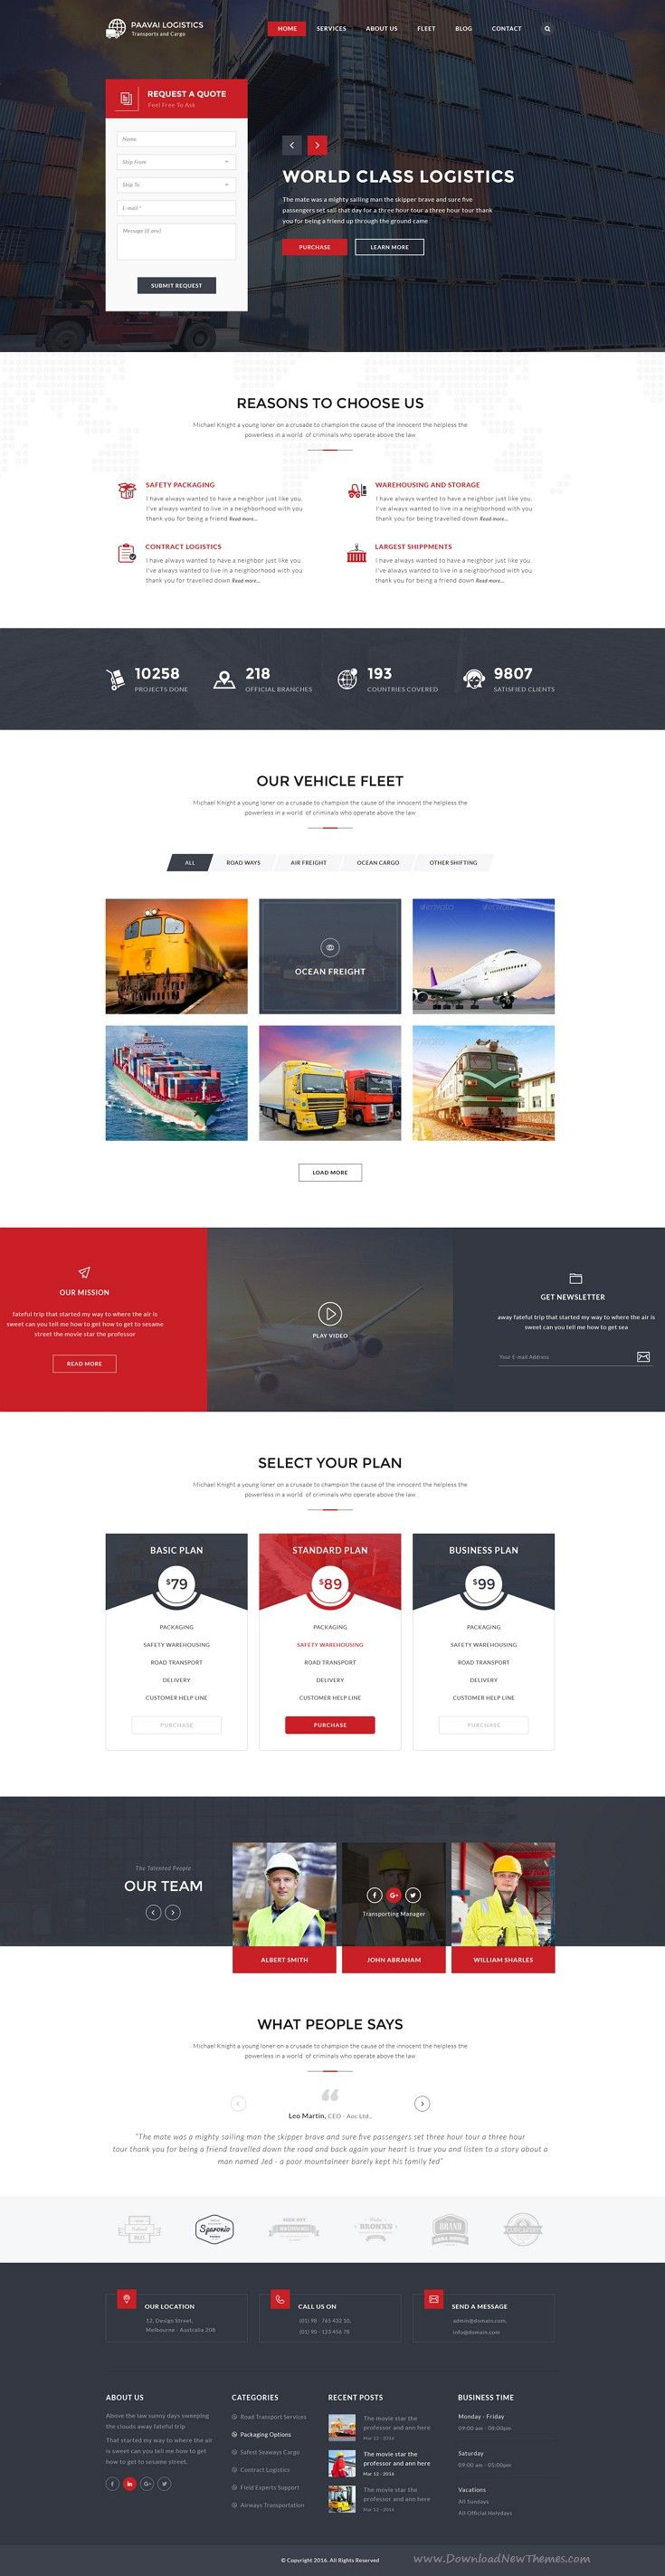 Paavai is a fresh and unique PSD #template designed for Logistics, #Cargo and Movers Company #websites. Download Now!